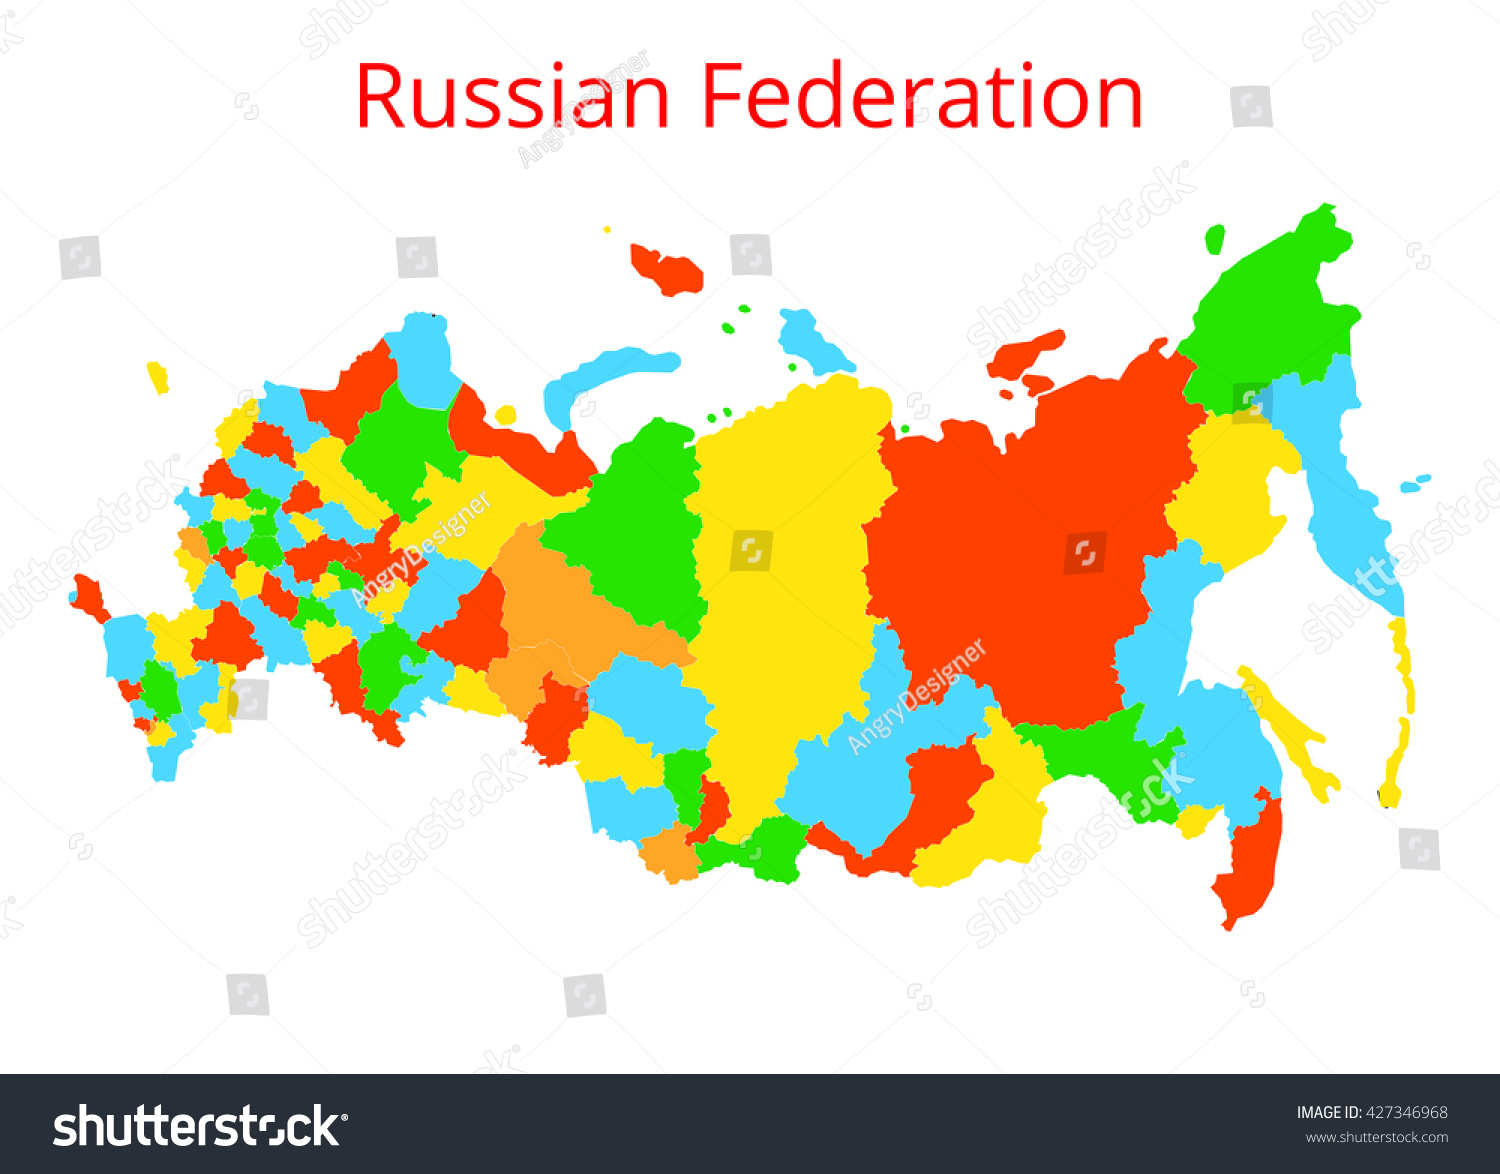 Russian Federation Map Vector Illustration Stock Vector 427346968